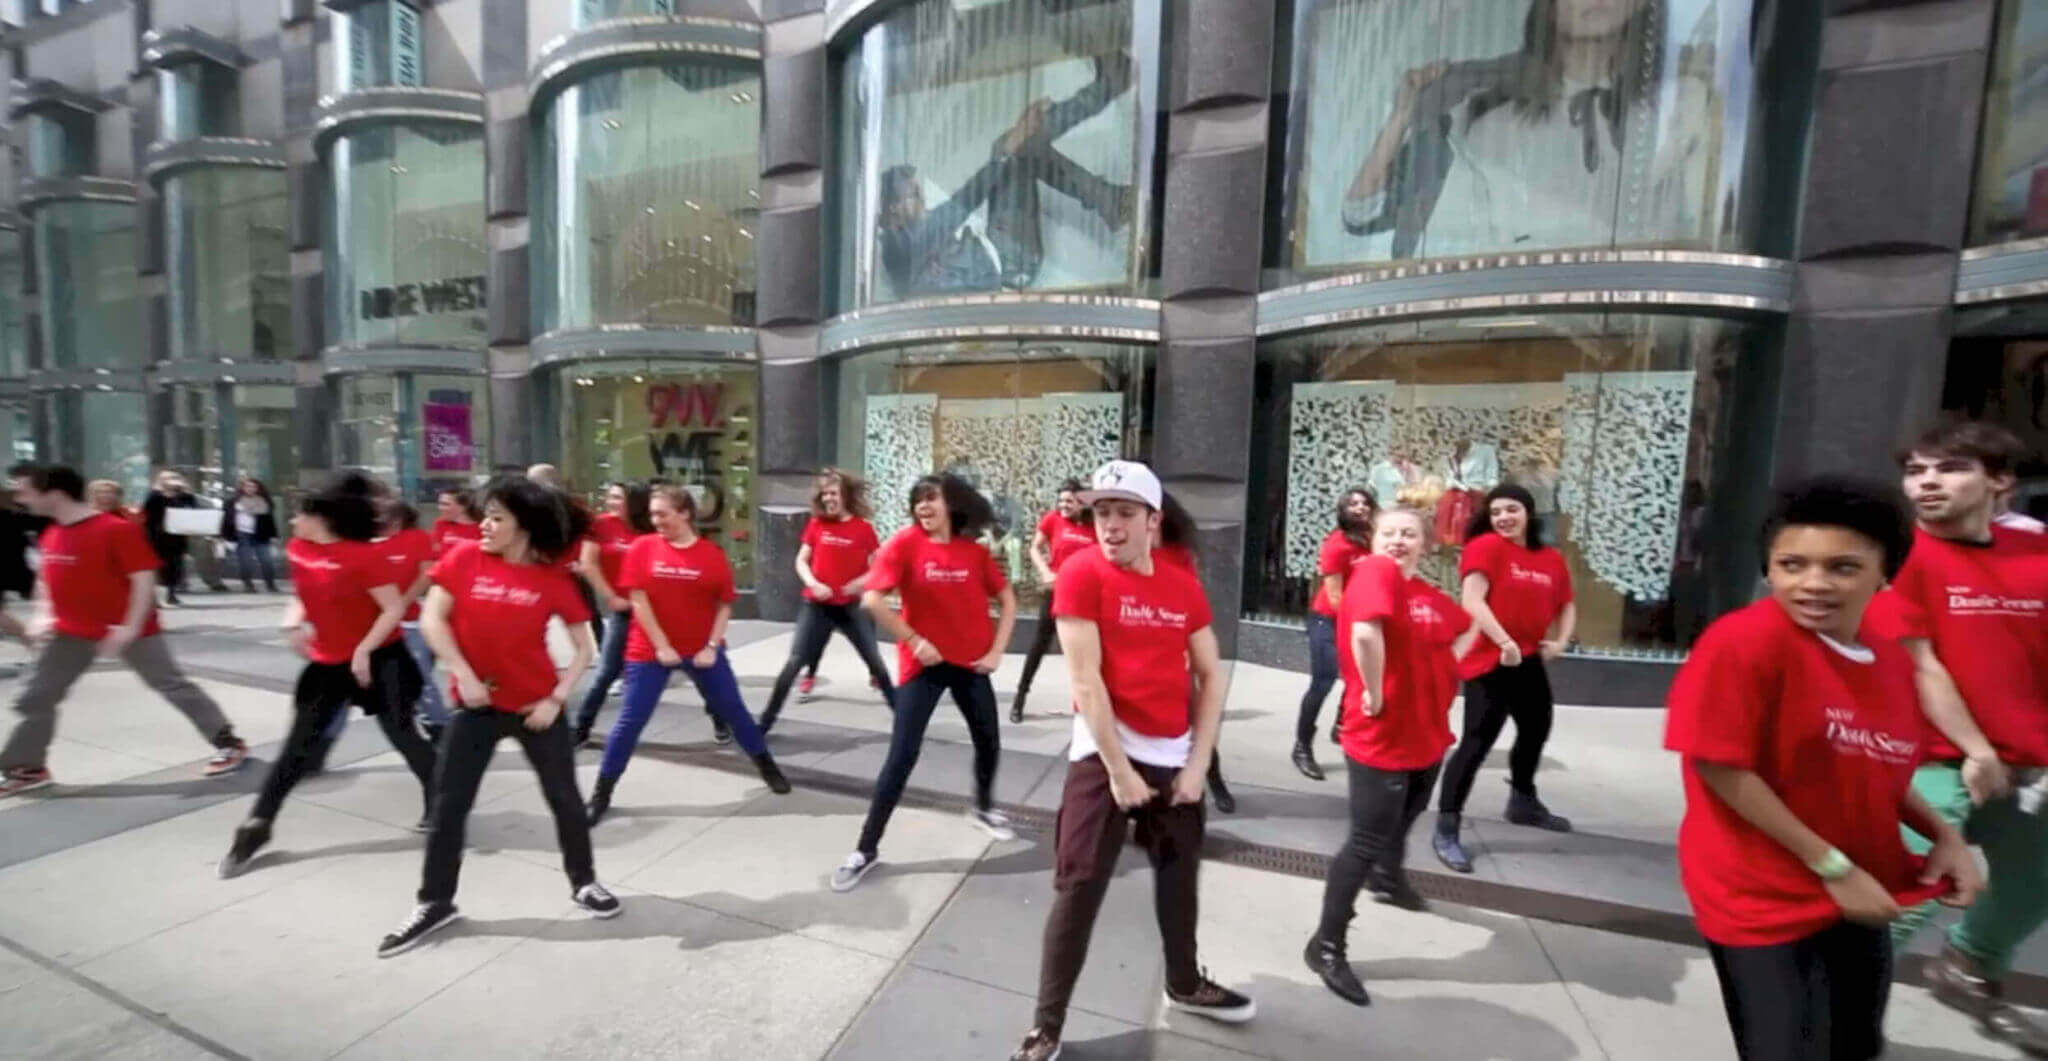 flashmob advertising